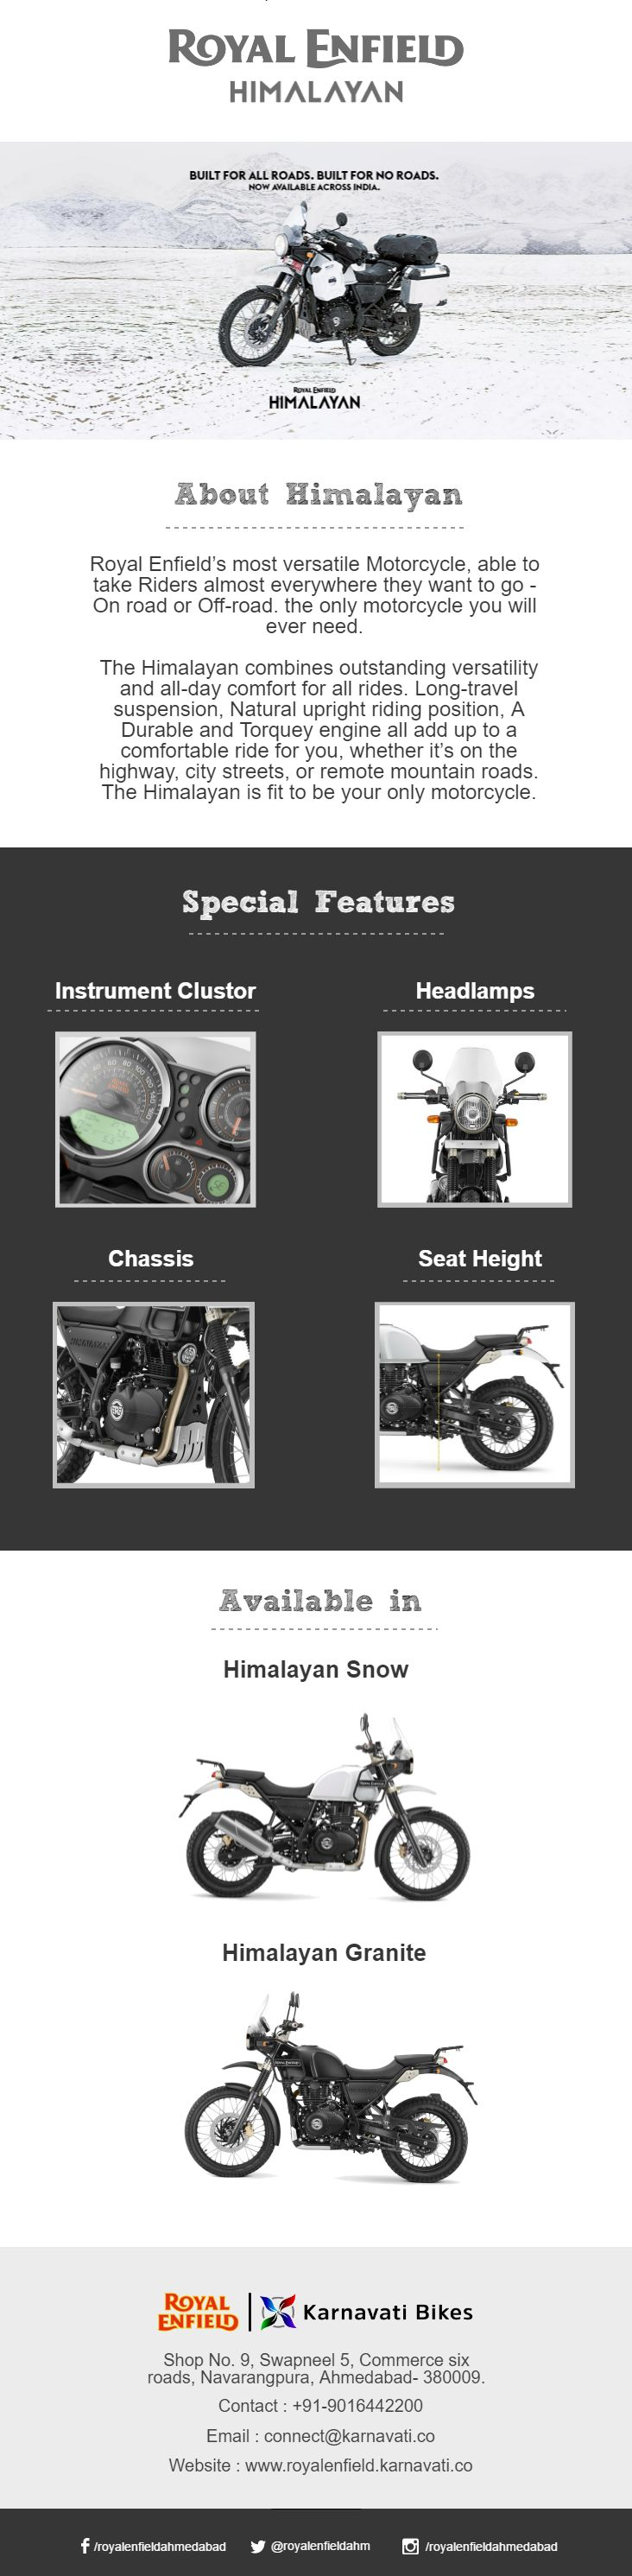 A motorcycle most suitable for any trip, trail or tour. A true rider's dream - #RoyalEnfield Himalayan. Check out below infographic for more details.